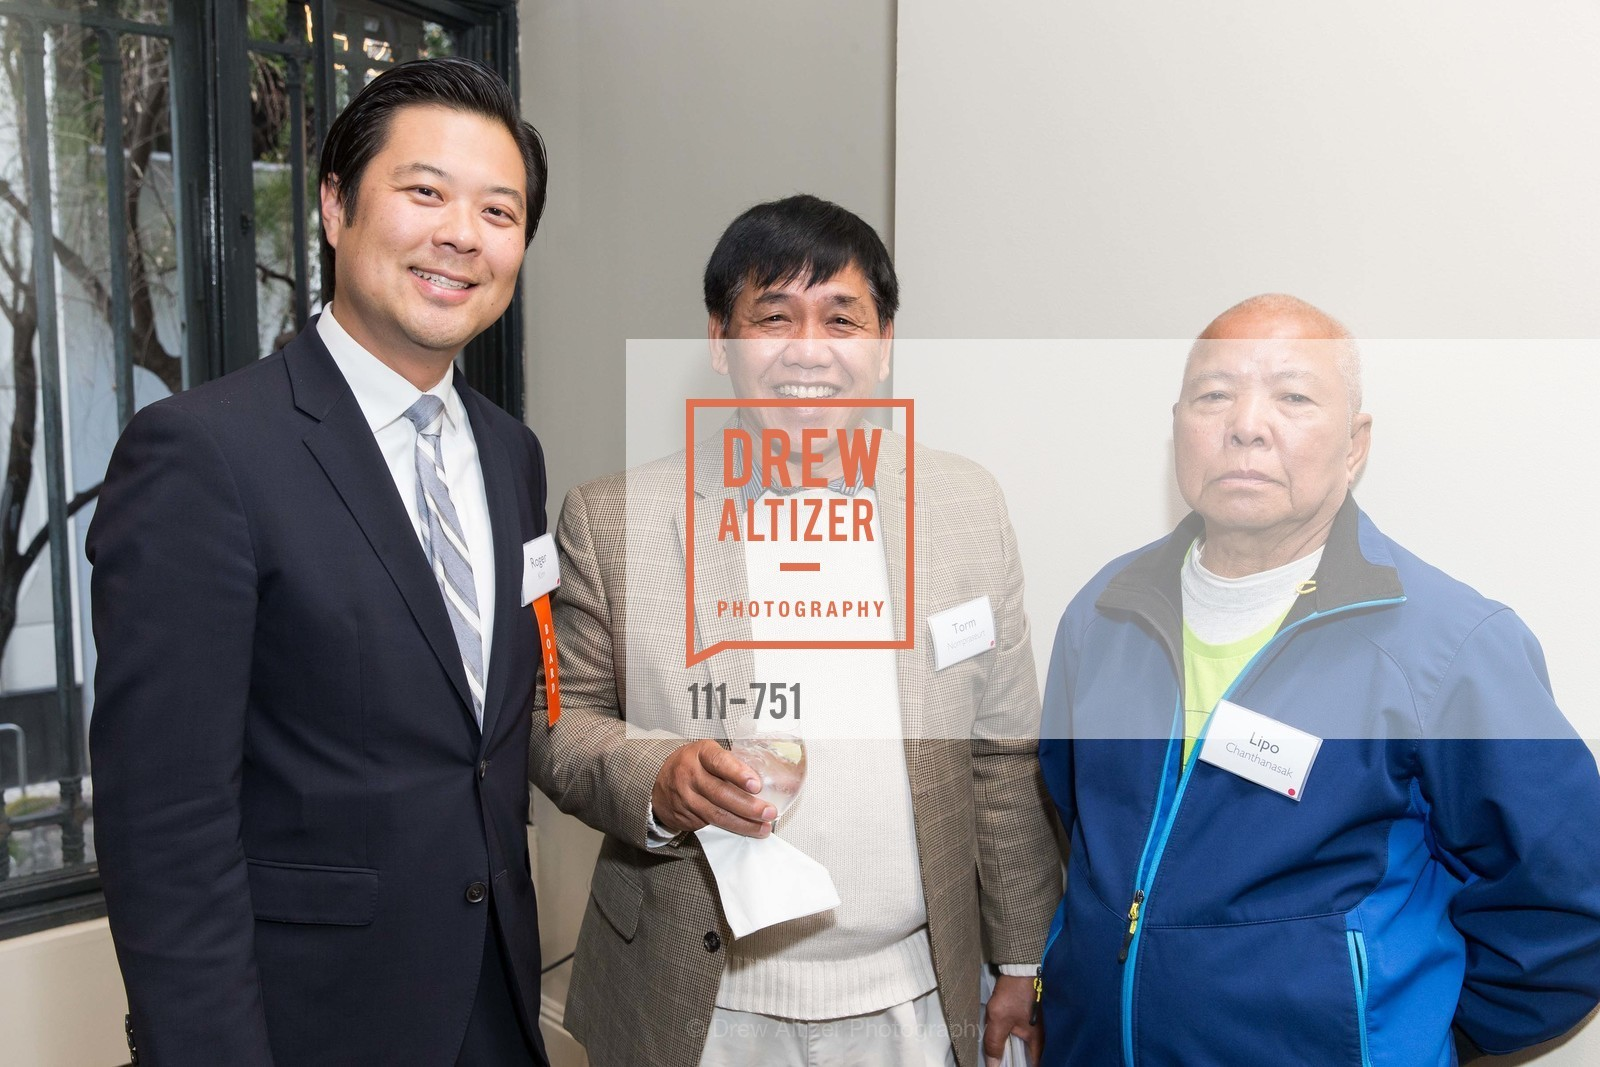 Roger Kim, Torm Nompraseurt, Lipo Chanthanasak, CENTER FOR ENVIRONMENTAL HEALTH (CEH) 2015 Gala, Bently Reserve, May 28th, 2015,Drew Altizer, Drew Altizer Photography, full-service agency, private events, San Francisco photographer, photographer california